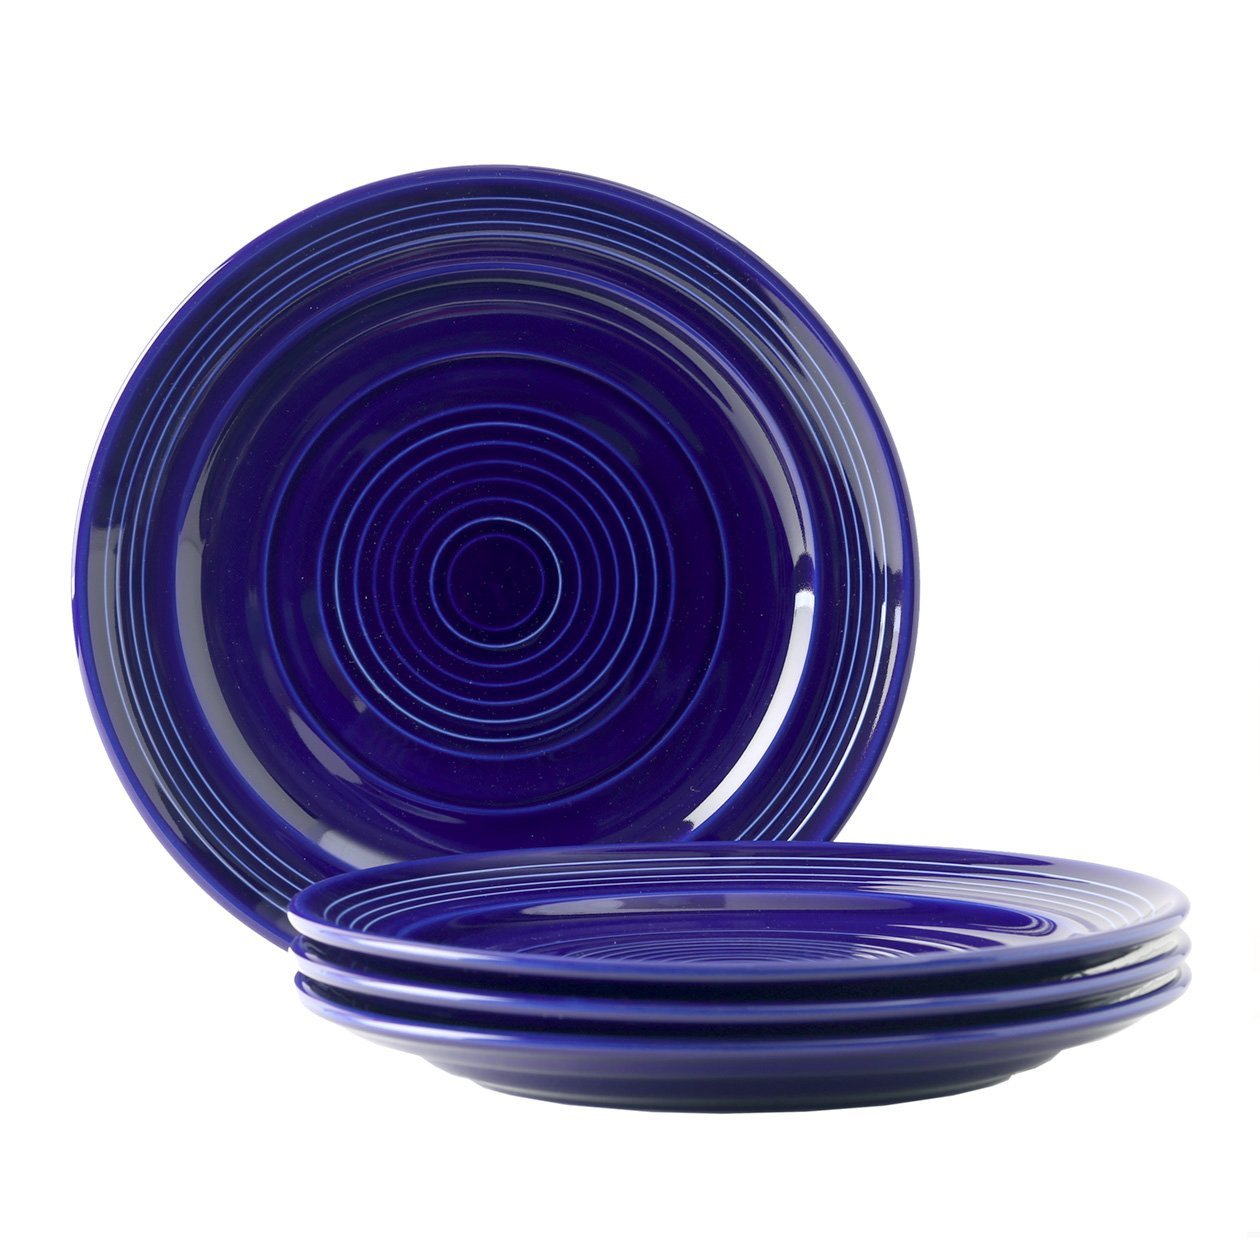 Tuxton Home Concentrix Dinner Plate (Set of 4), 10 1/2'', Cobalt Blue; Heavy Duty; Chip Resistant; Lead and Cadmium Free; Freezer to Oven Safe up to 500F